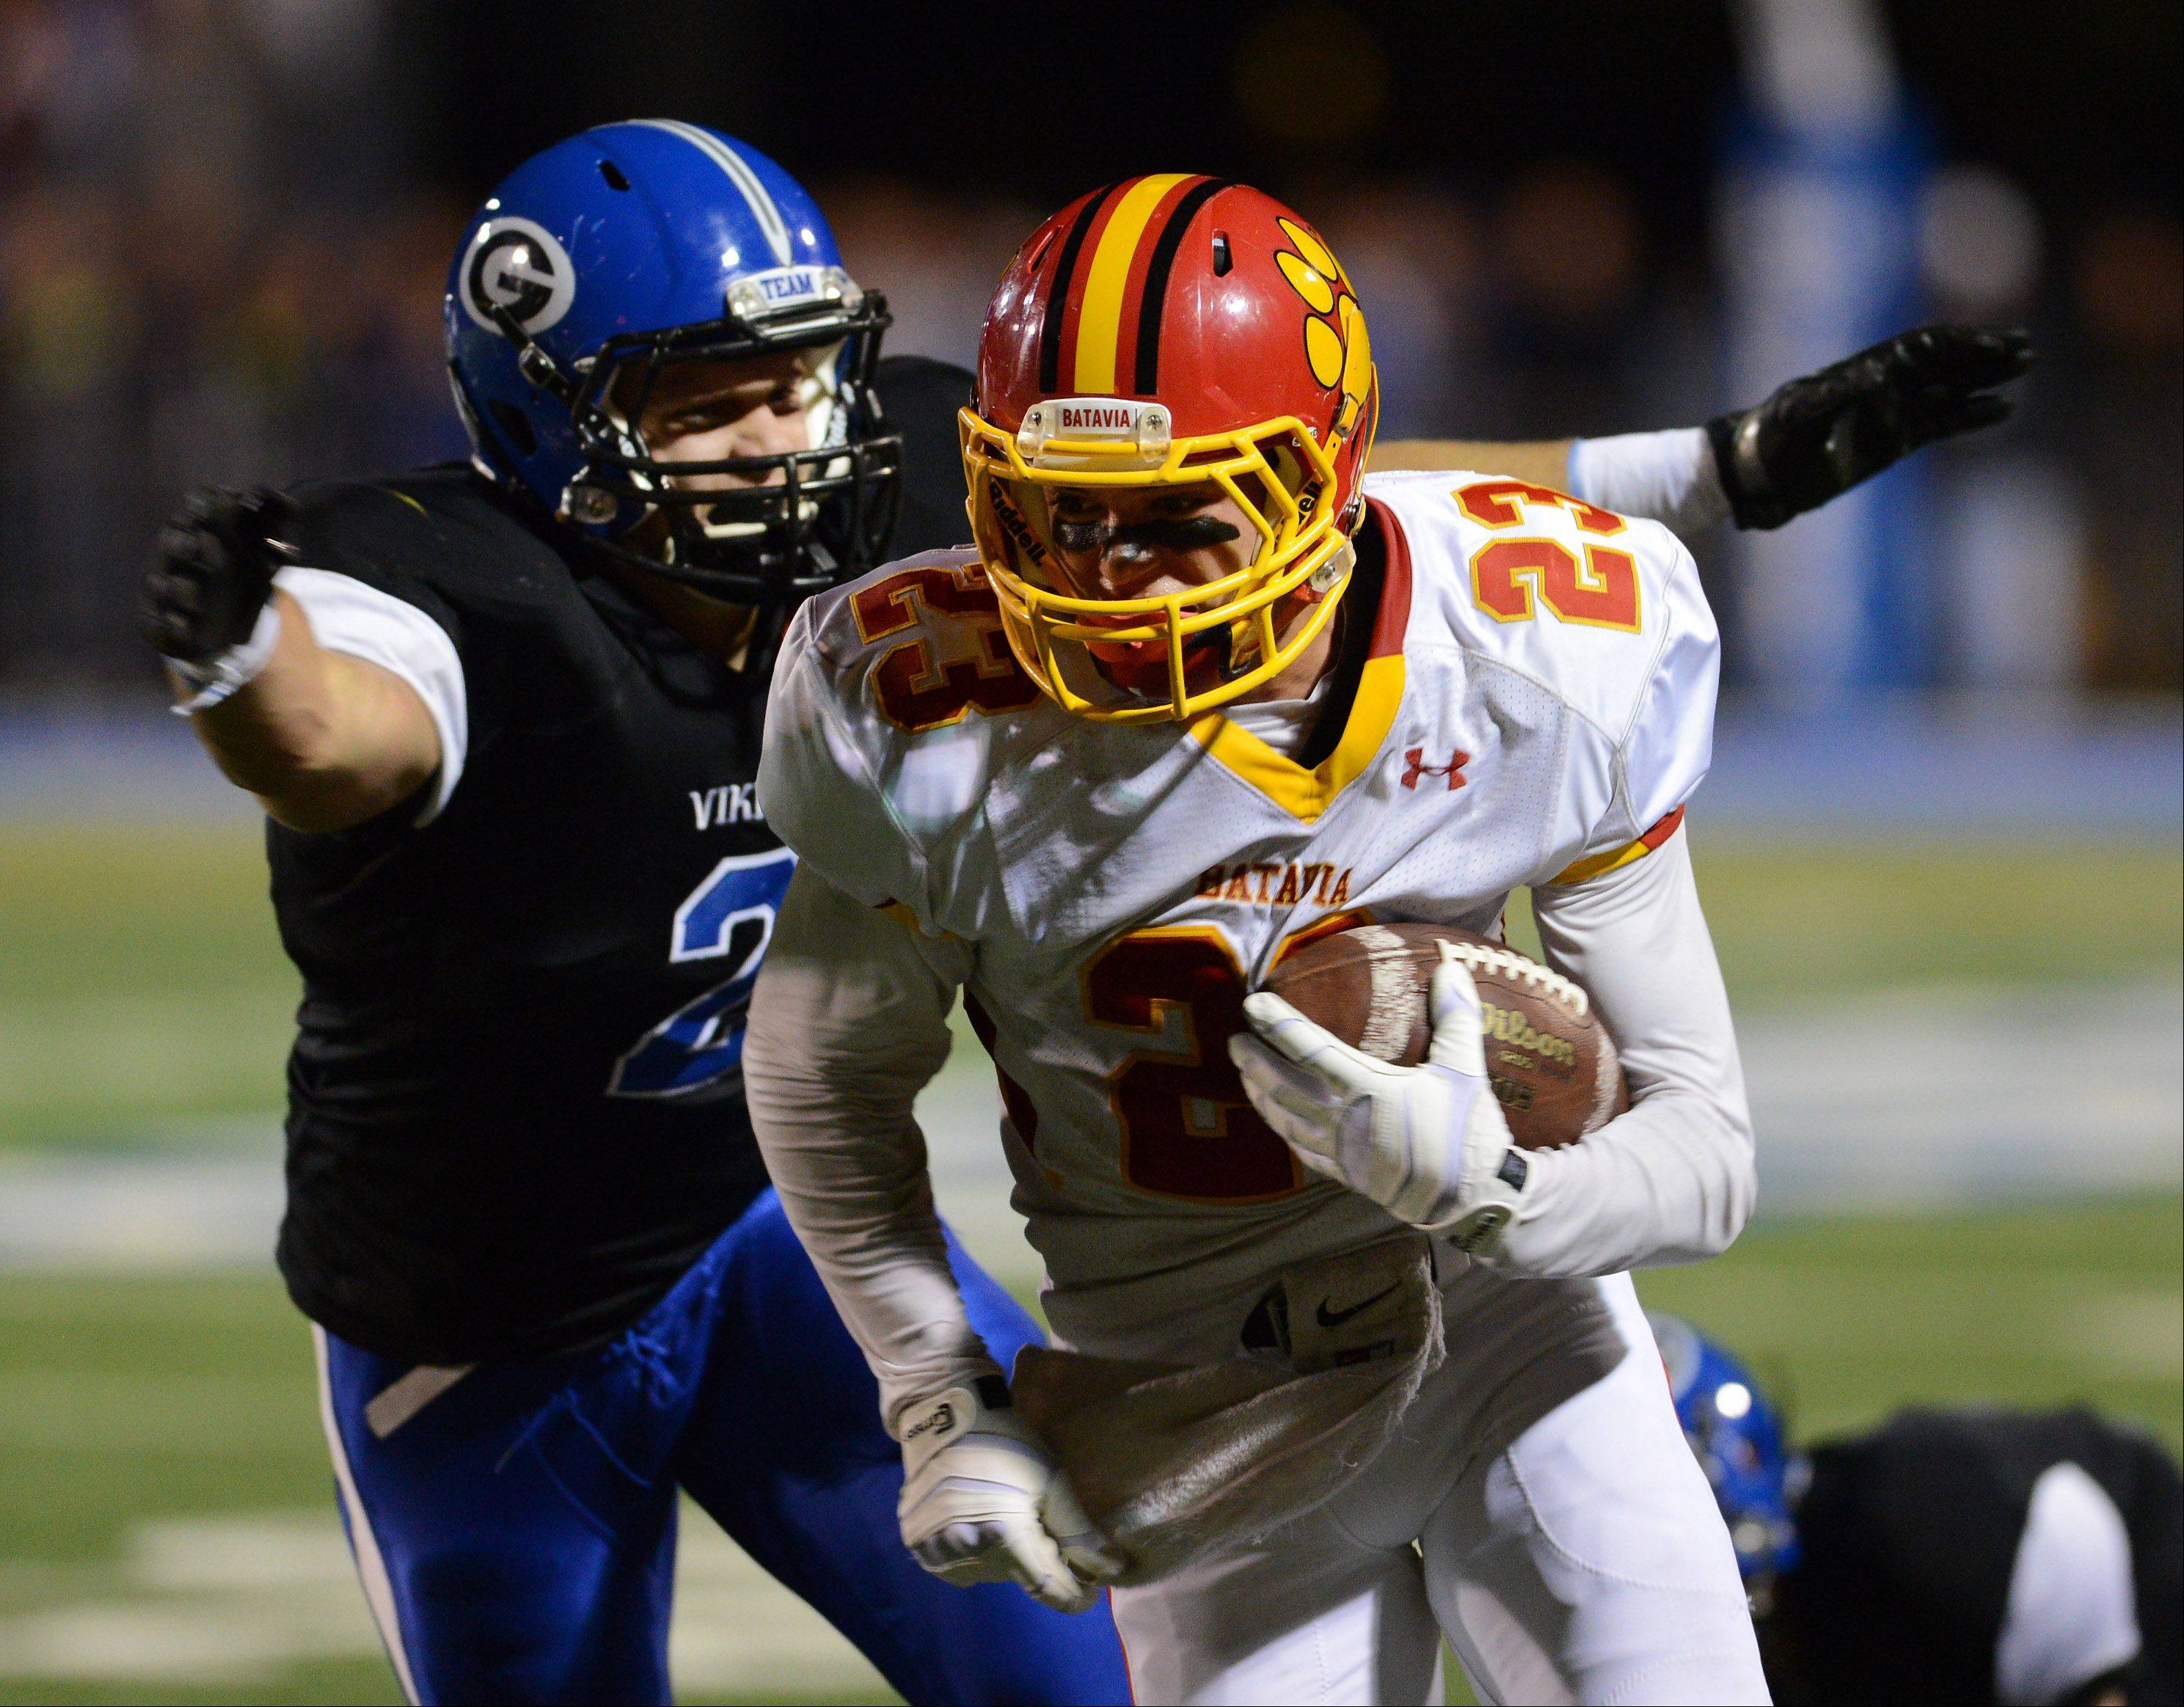 Geneva's Billy Douds closes in on Batavia's Michael Moffatt.